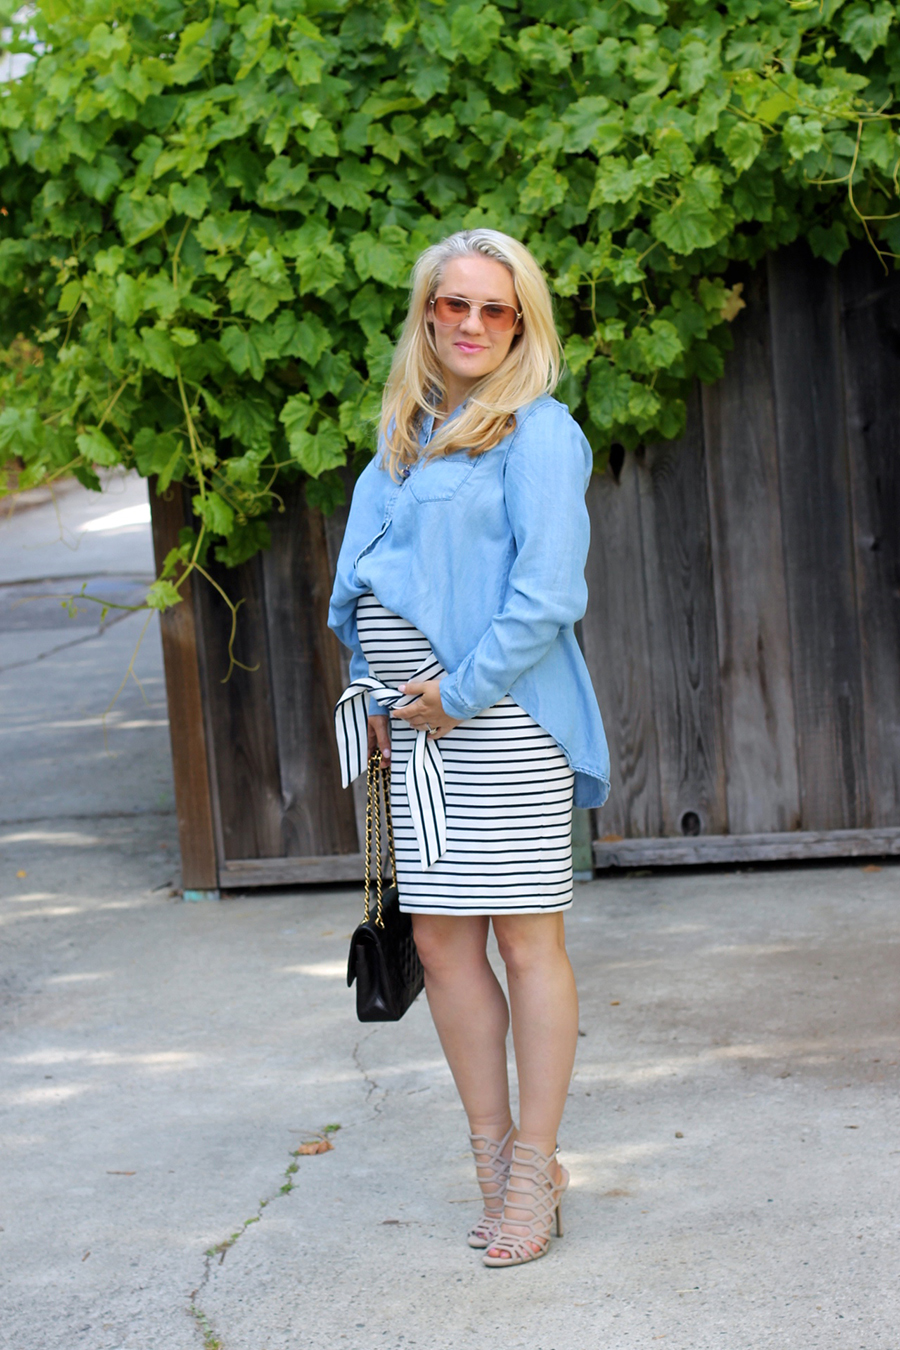 Kingdom & State-Tie Front Skirt-Maternity Style-Pregnancy Style-Chambray Top-Target Style-Have Need Want 6